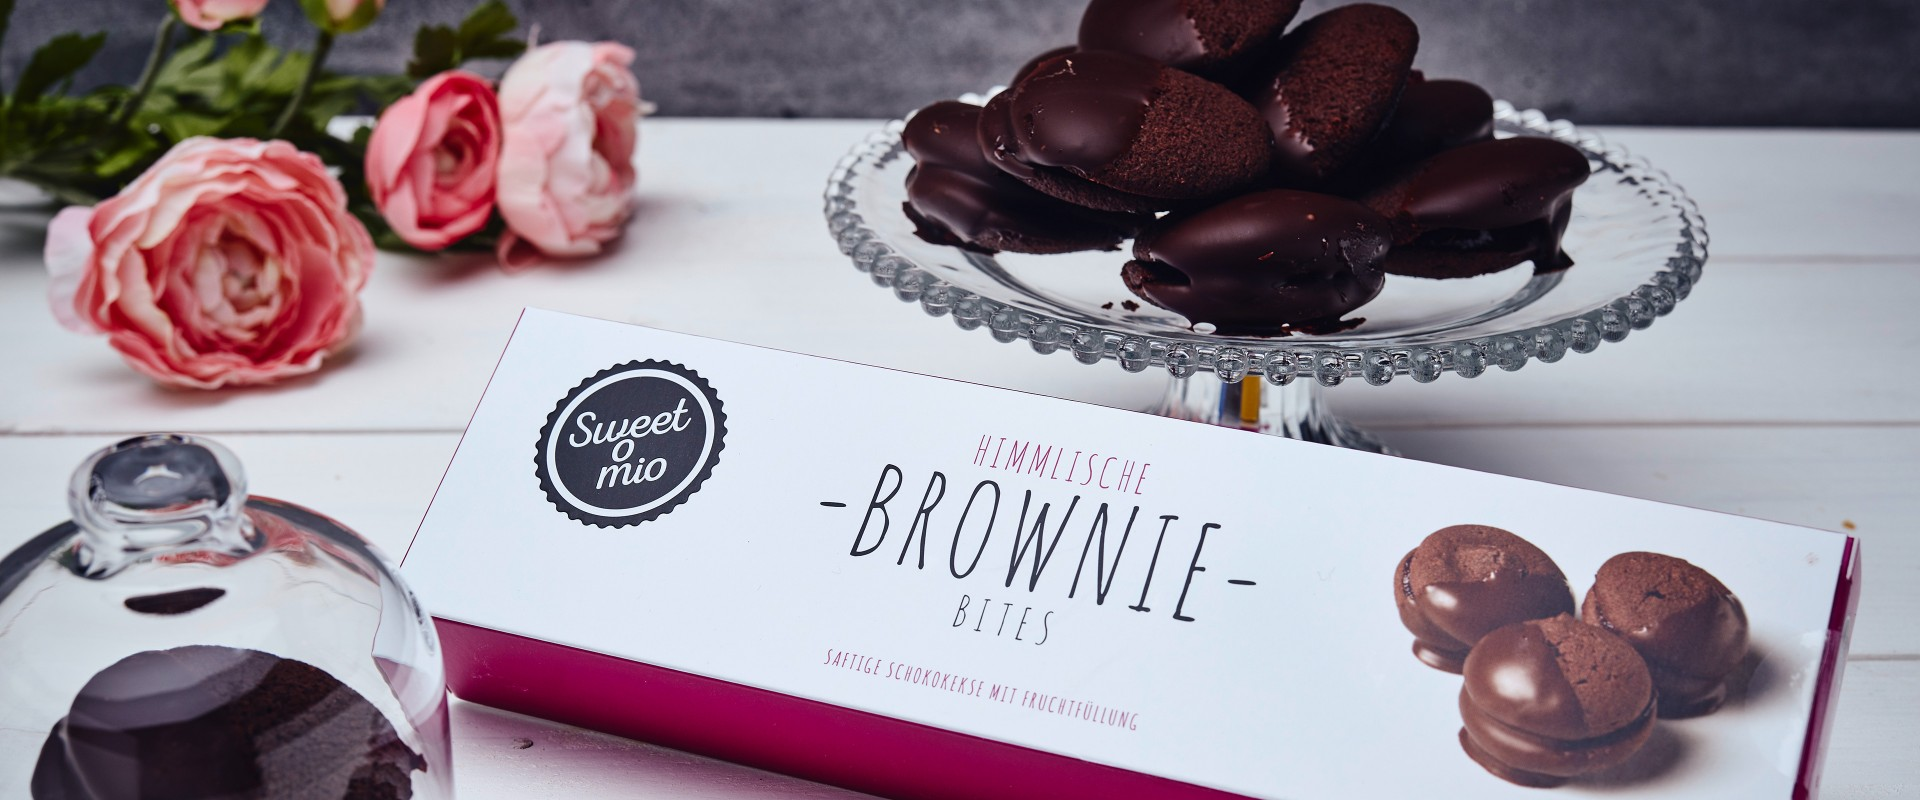 Sweet-o-mio Brownie Bites